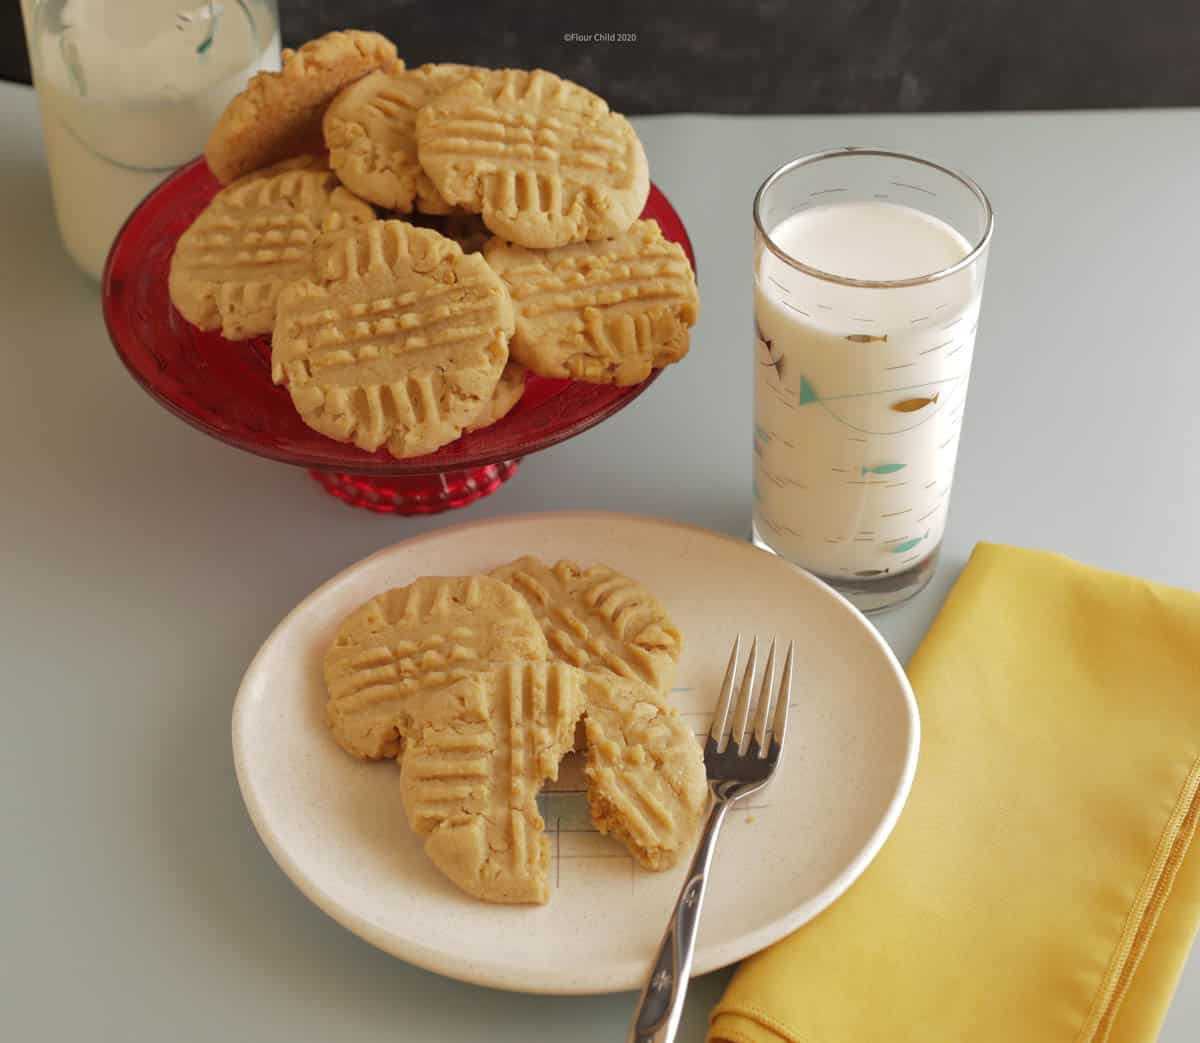 Peanut butter cookies on a dessert plate with a glass of milk next to it and a platter of peanut butter cookies behind it